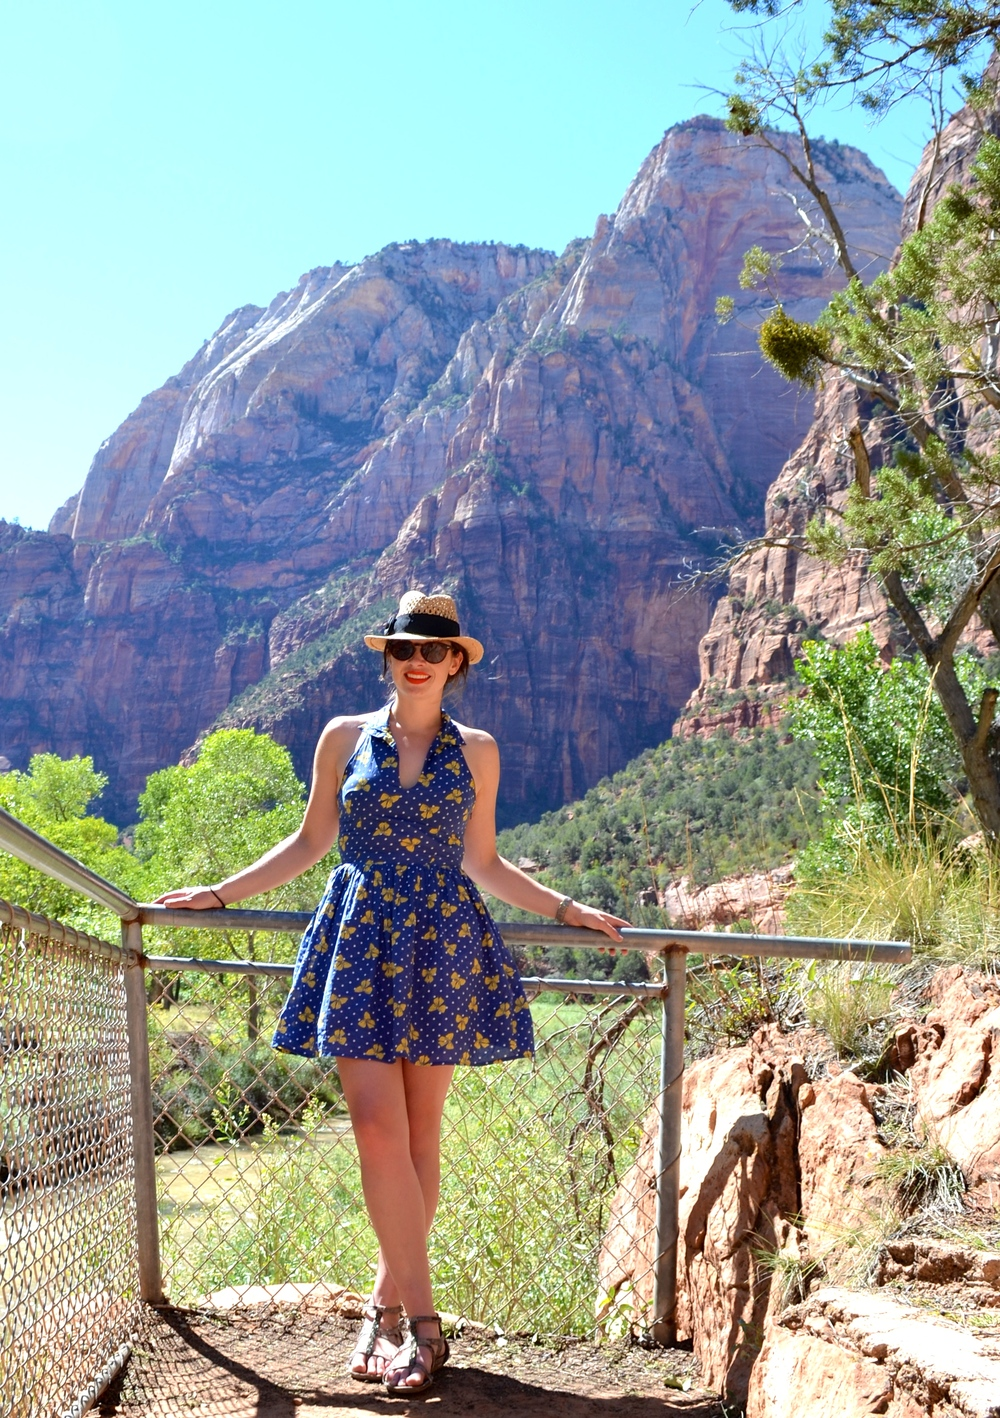 zion-national-park-overlook